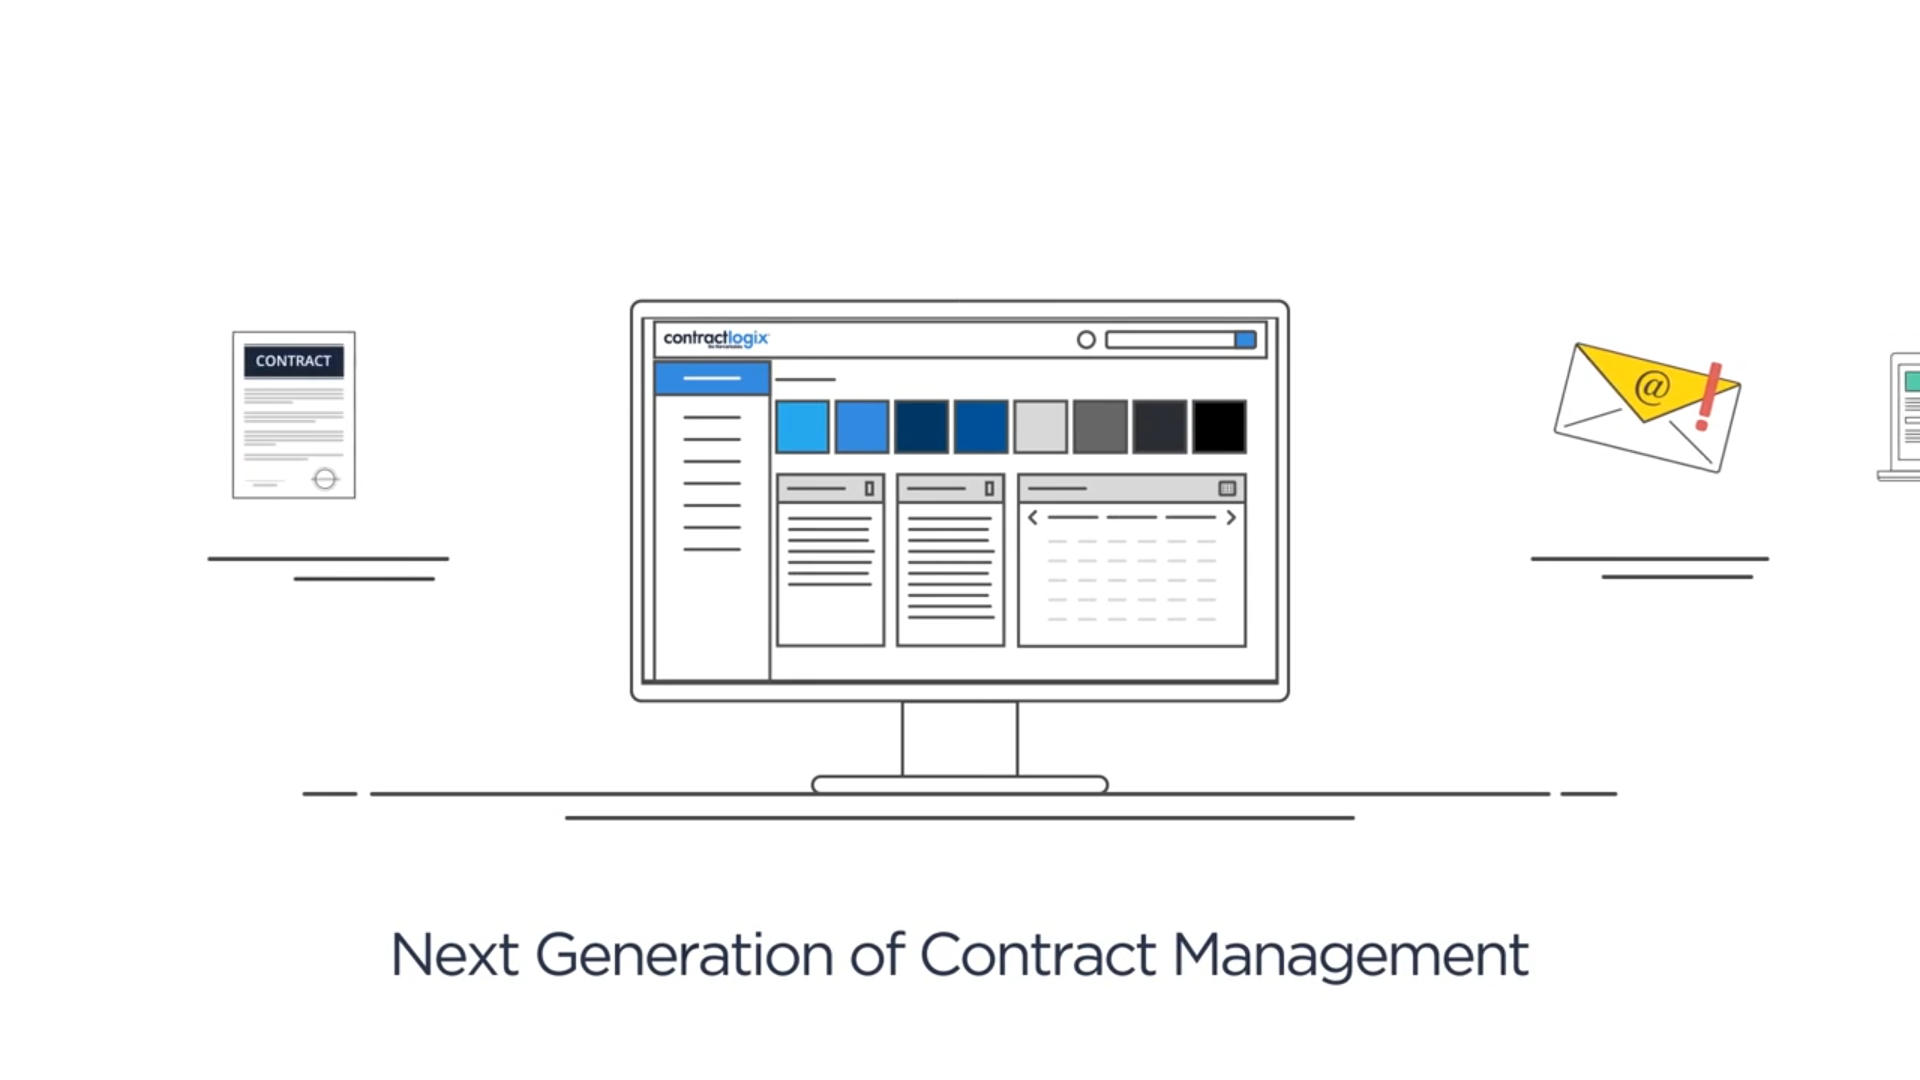 Next Generation of Contract Management